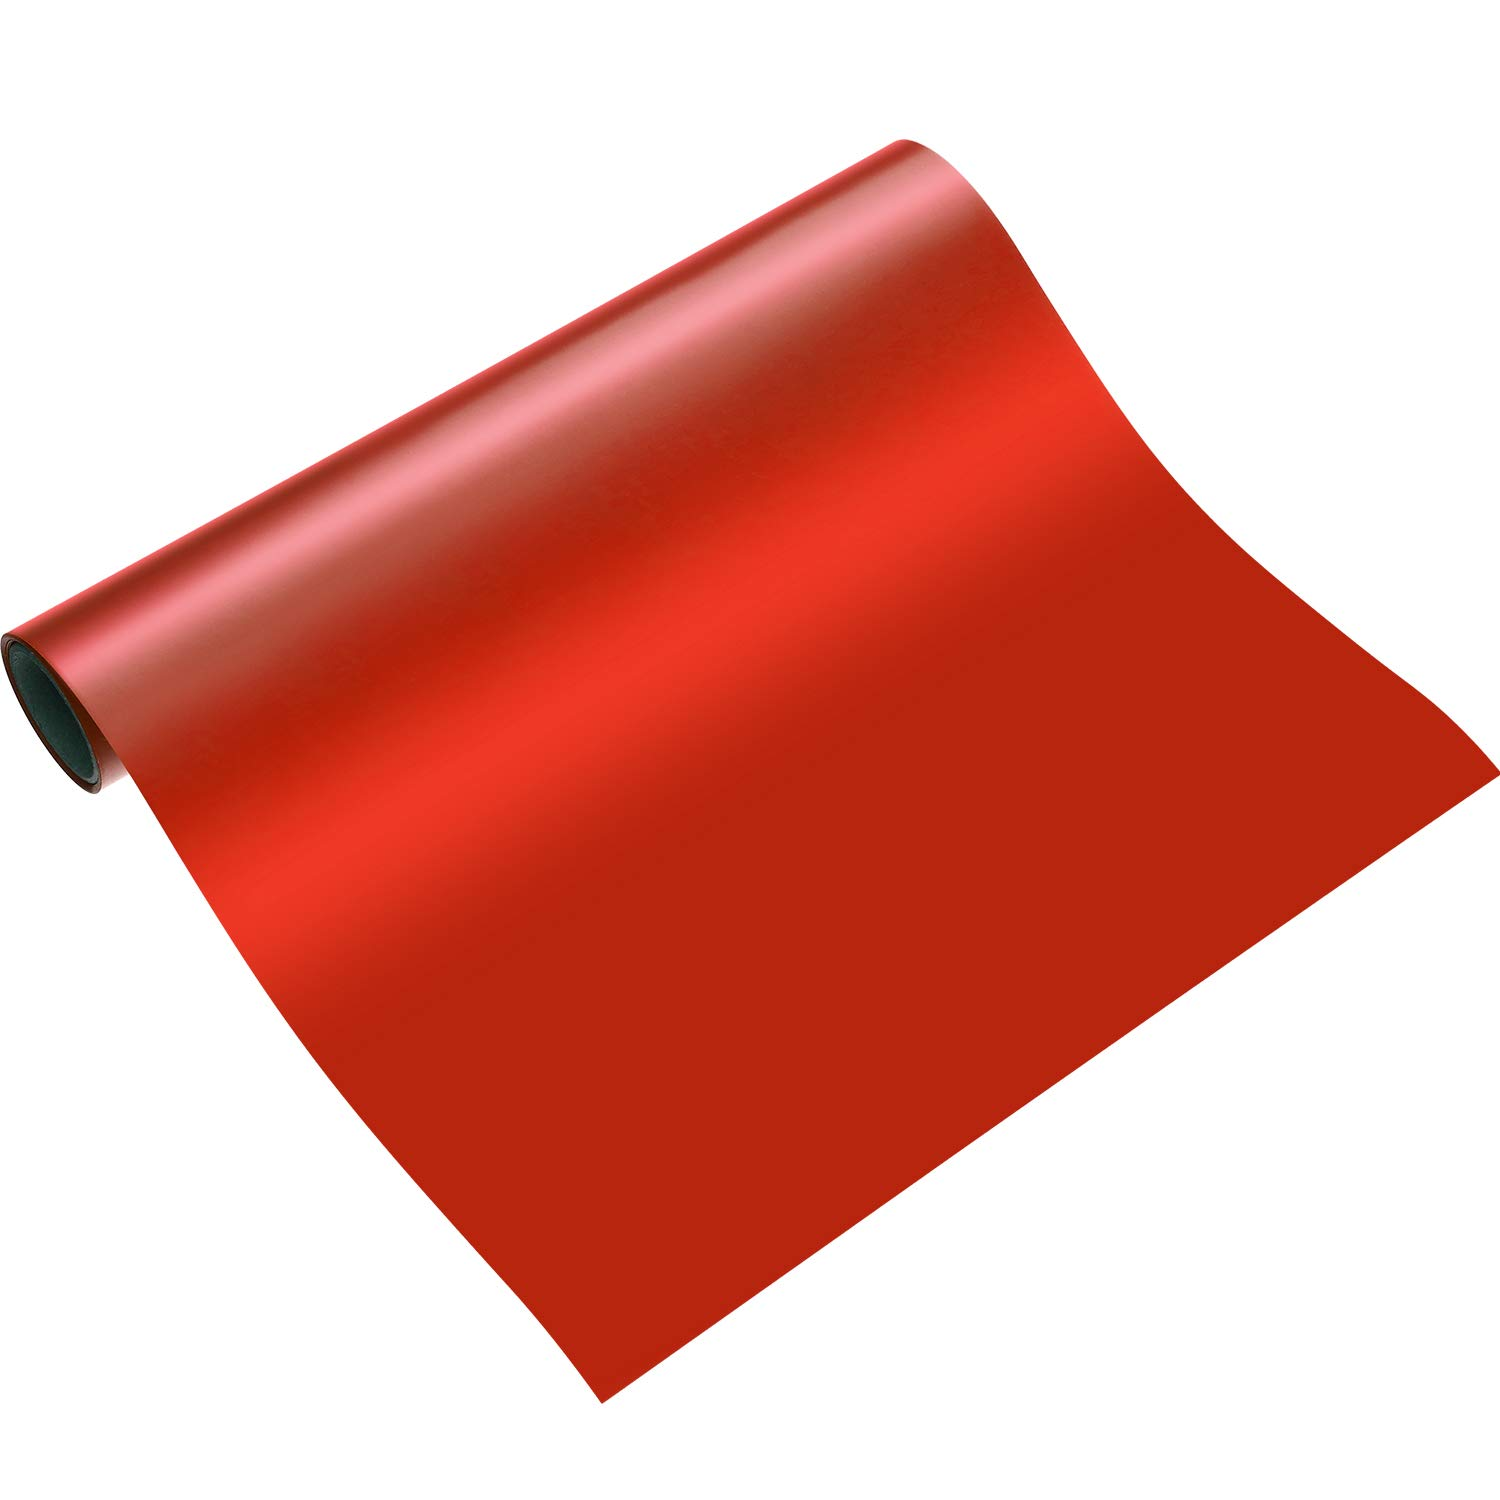 Blulu 1 Roll Heat Transfer Vinyl 12 Inch by 5 Feet for T-Shirts, Hats, Clothing, Iron on HTV Compatible with Cricut, Cameo, Heat Press Machines, Sublimation (Red)